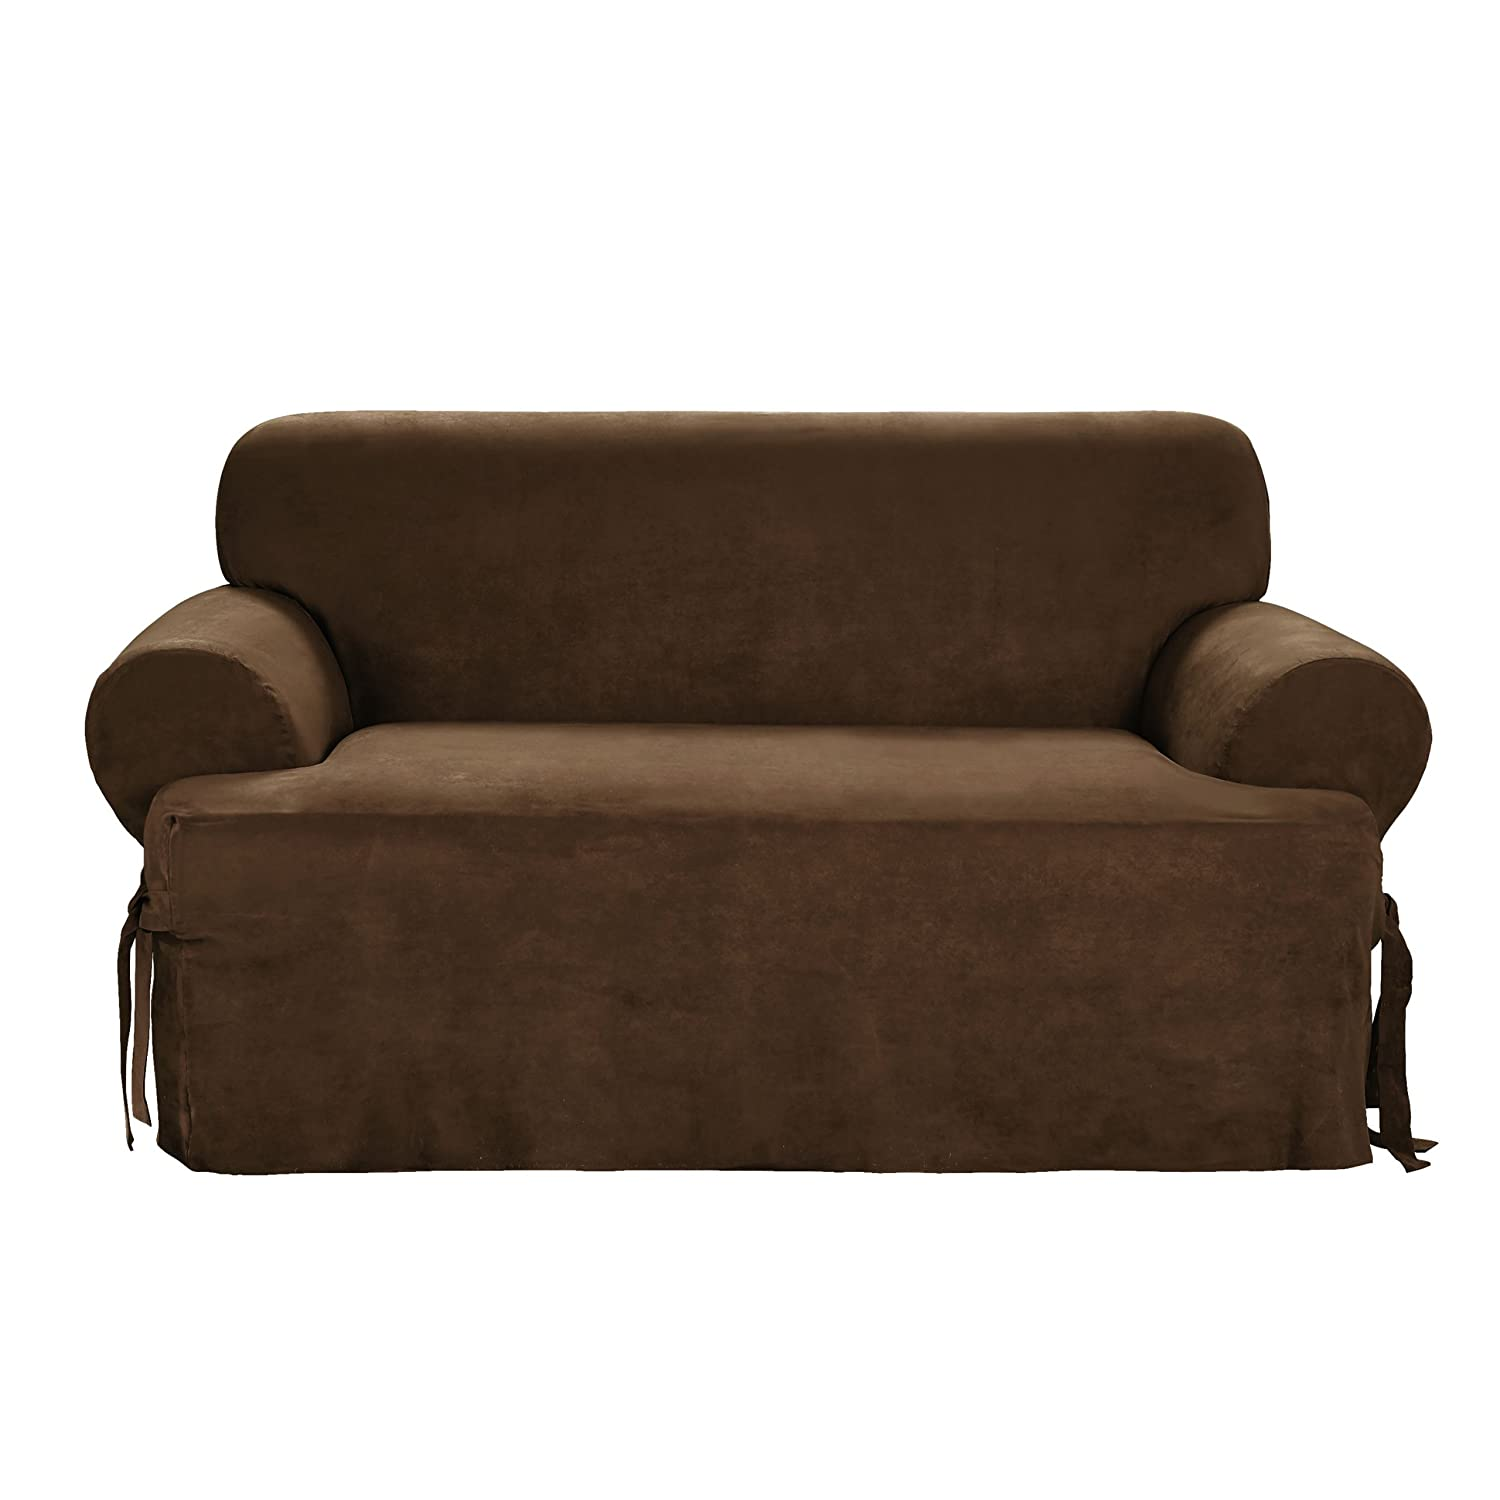 Amazon Sure Fit Soft Suede T Cushion Loveseat Slipcover